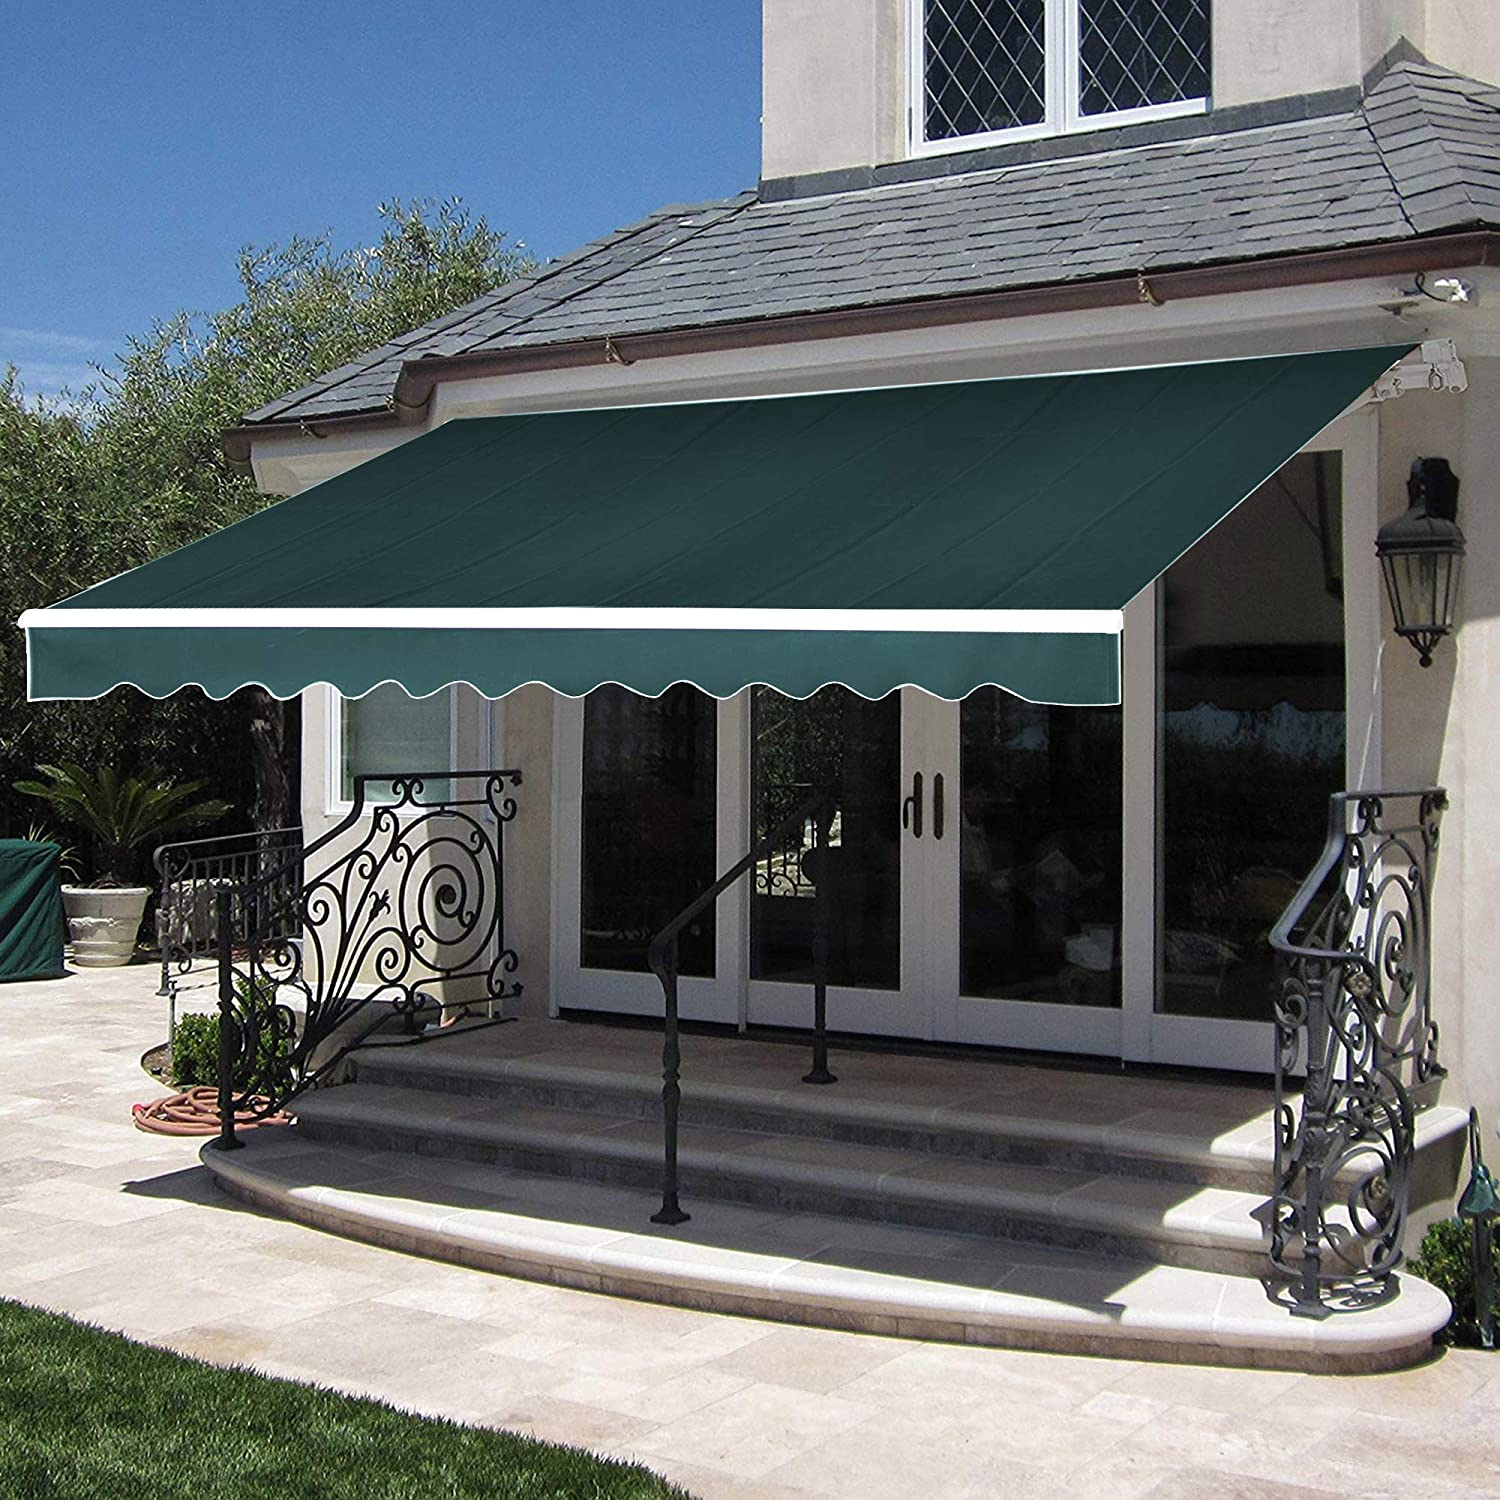 MCombo 12×10 Feet Manual Retractable Patio Door Window Awning Sunshade Shelter Outdoor Canopy Green